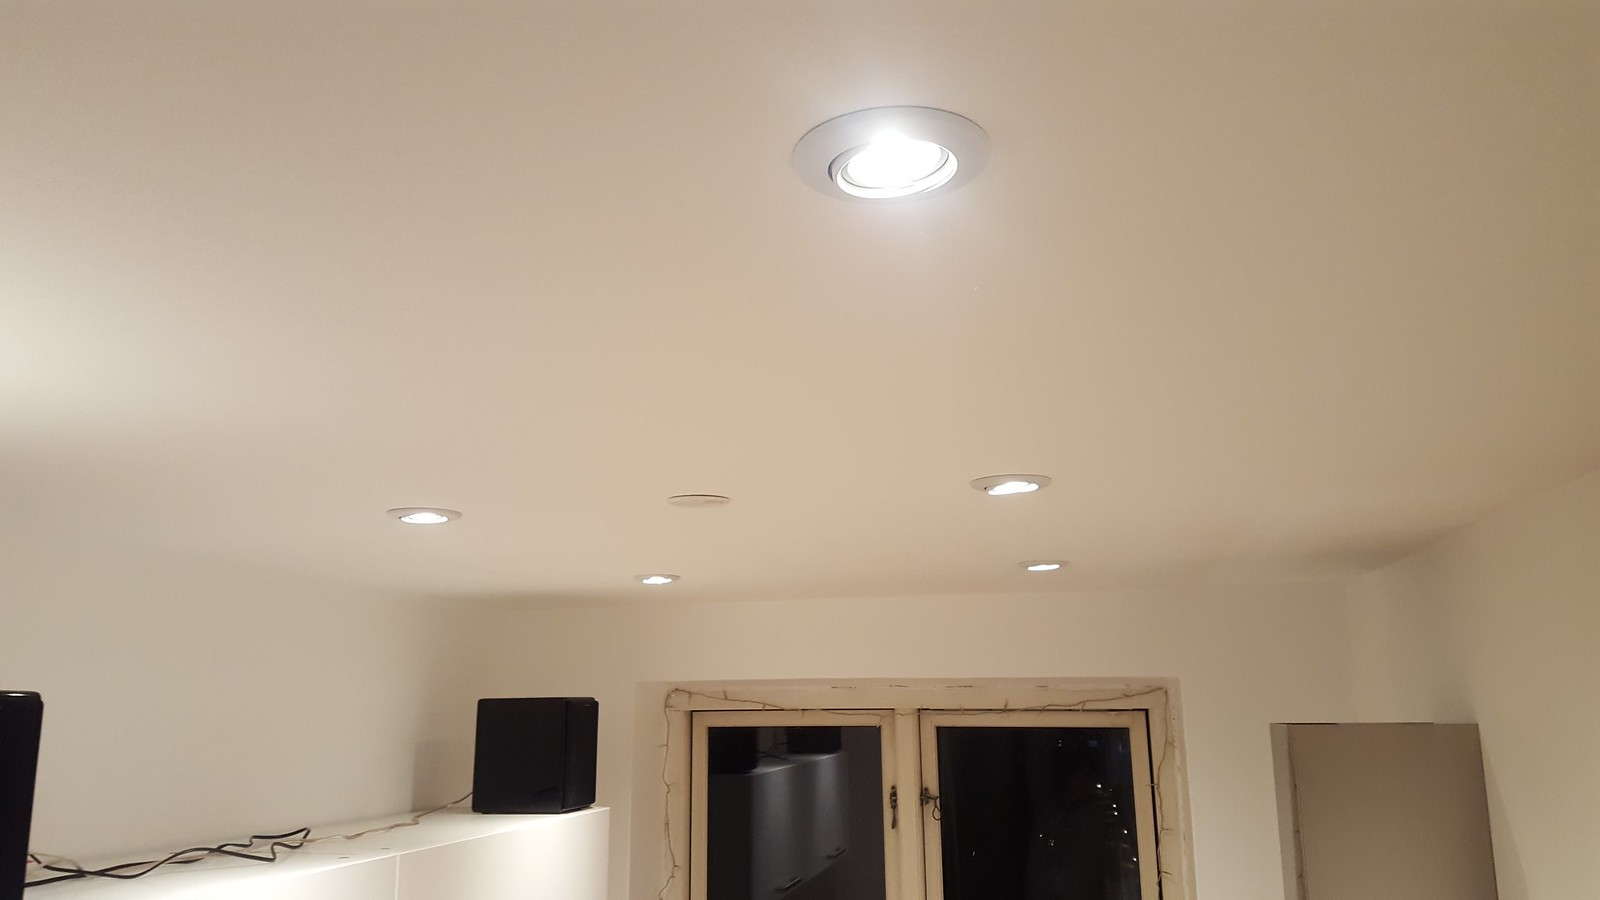 Guide: Lower Ceiling and Install LED Downlight